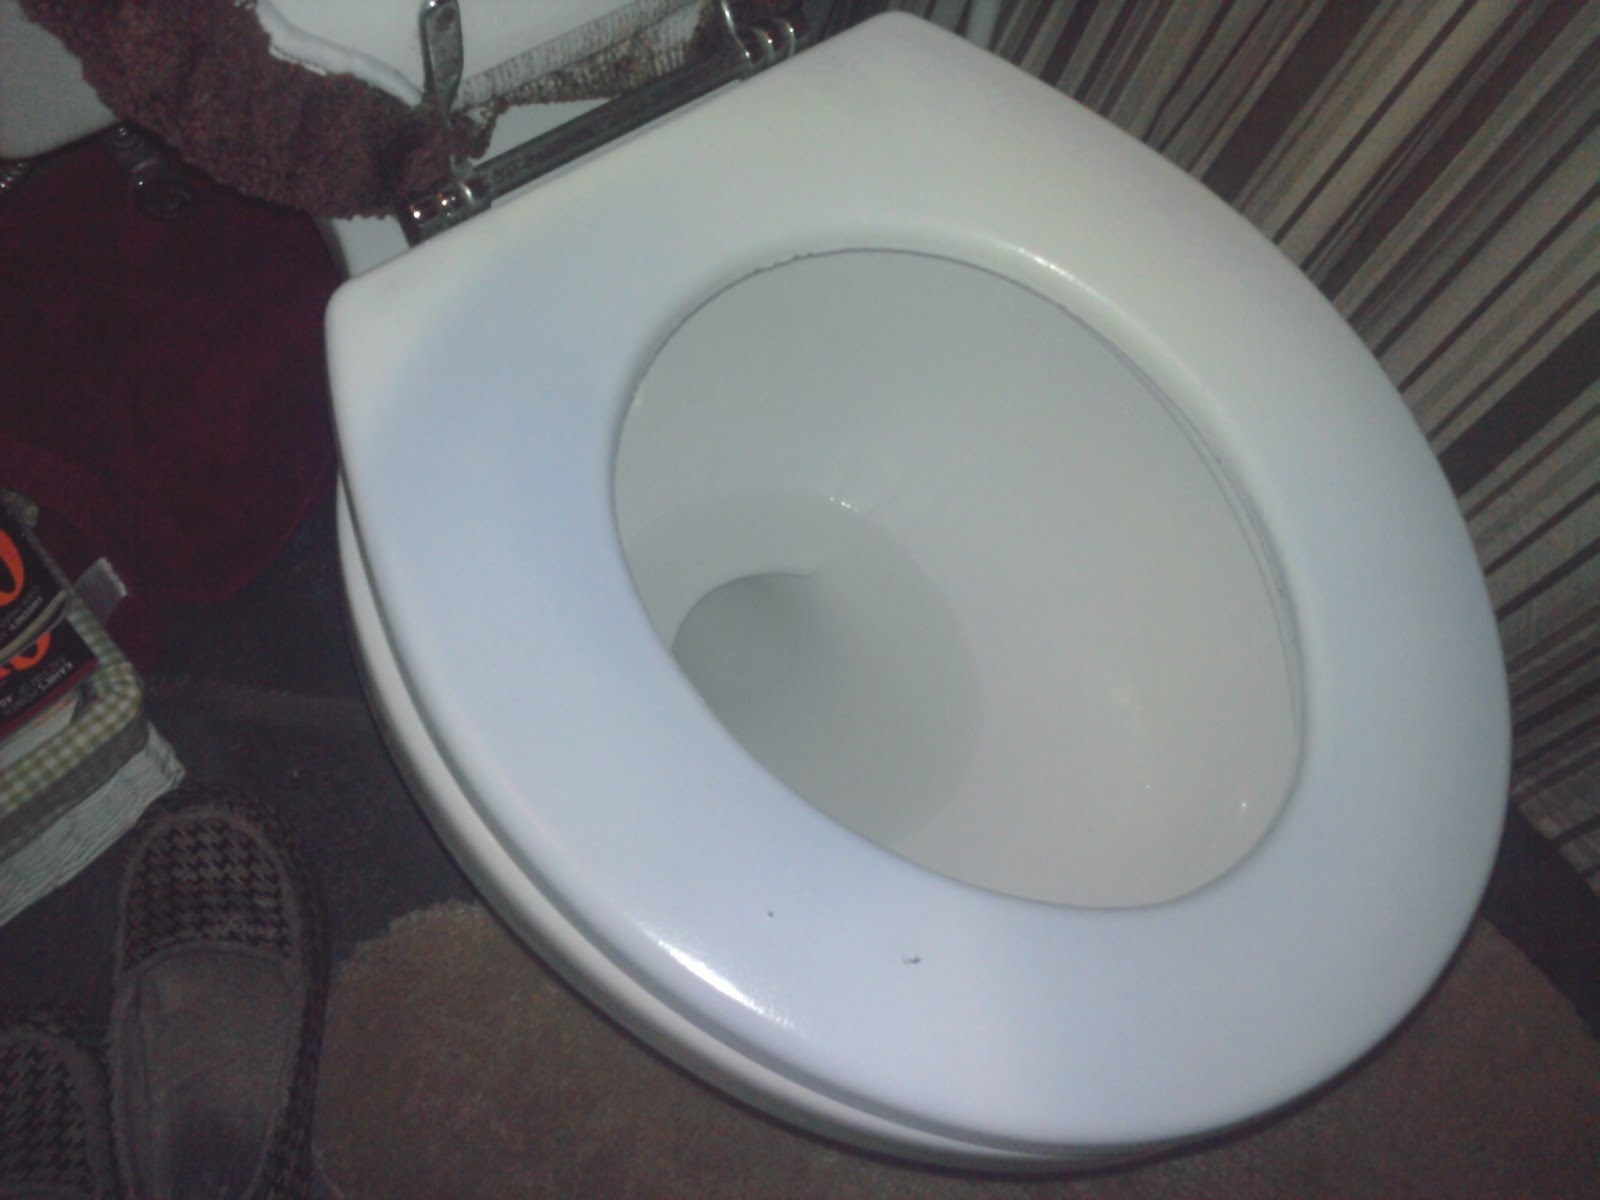 Kayla & Steve: The Blue Toilet Seat Mystery